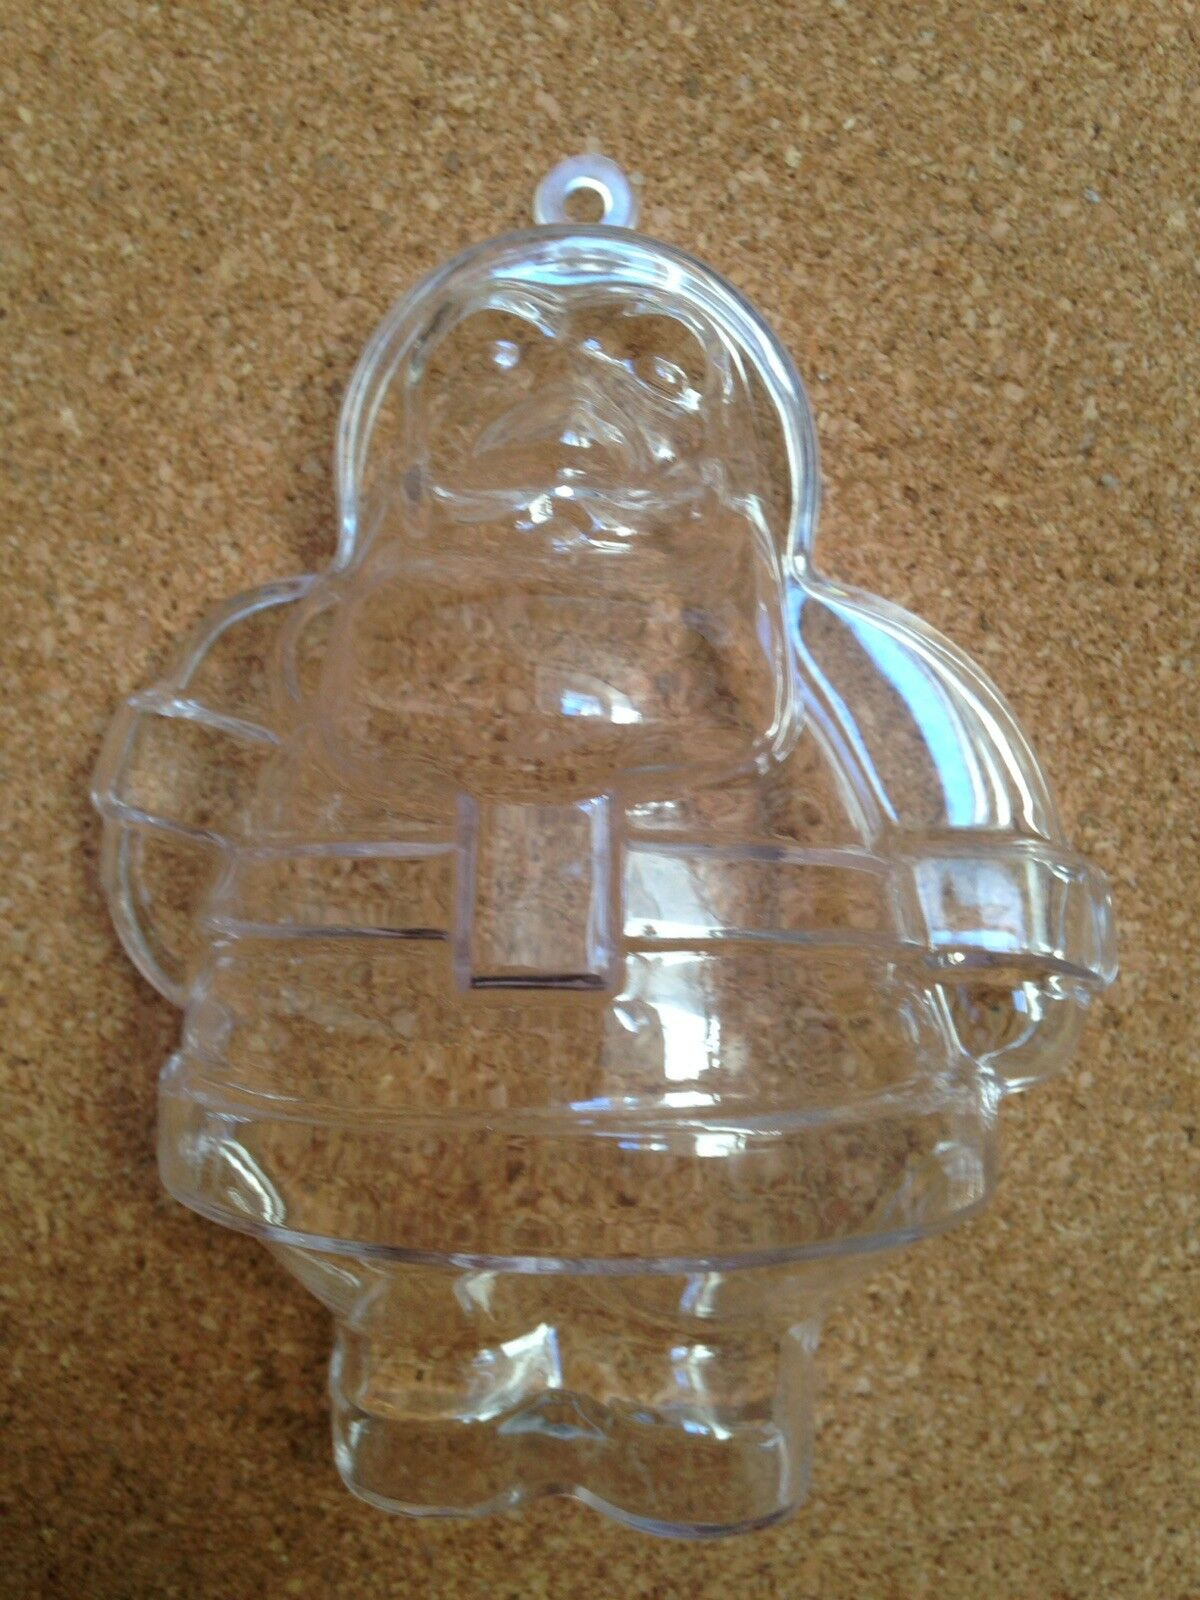 50 KEYLINK KEYLINK KEYLINK NOVELTY CLEAR FATHER CHRISTMAS IDEAL FOR CHOC,FAVOURS,PARTIES a6029b